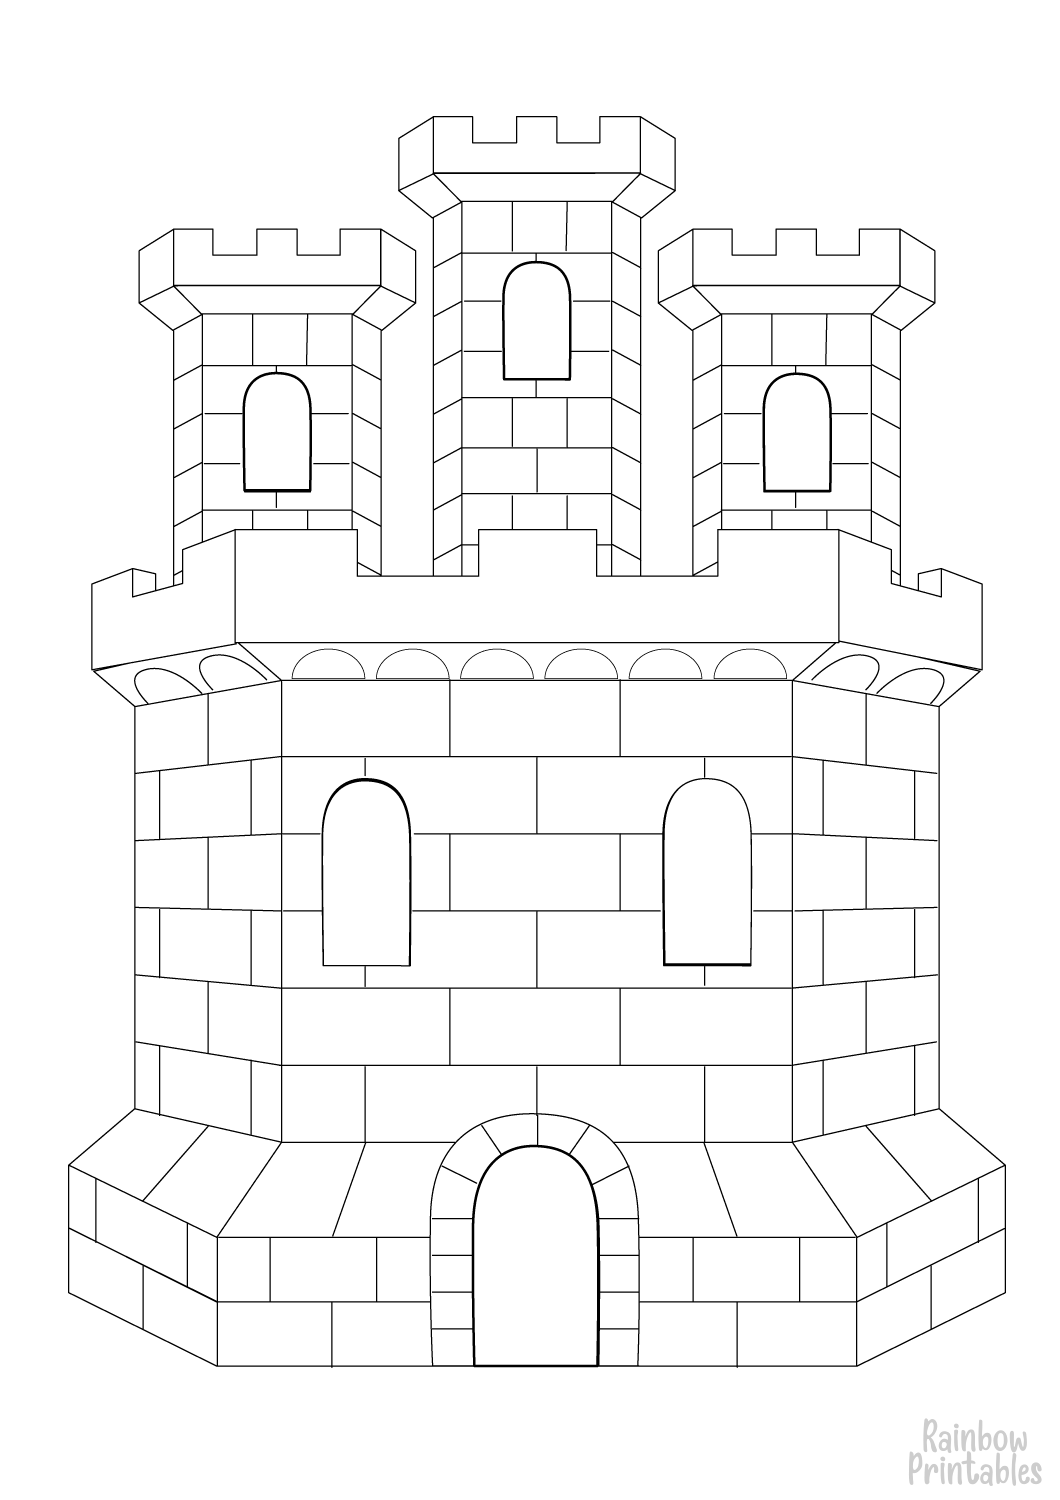 cartoon-line-art-world-castle-coloring-page-for-kids